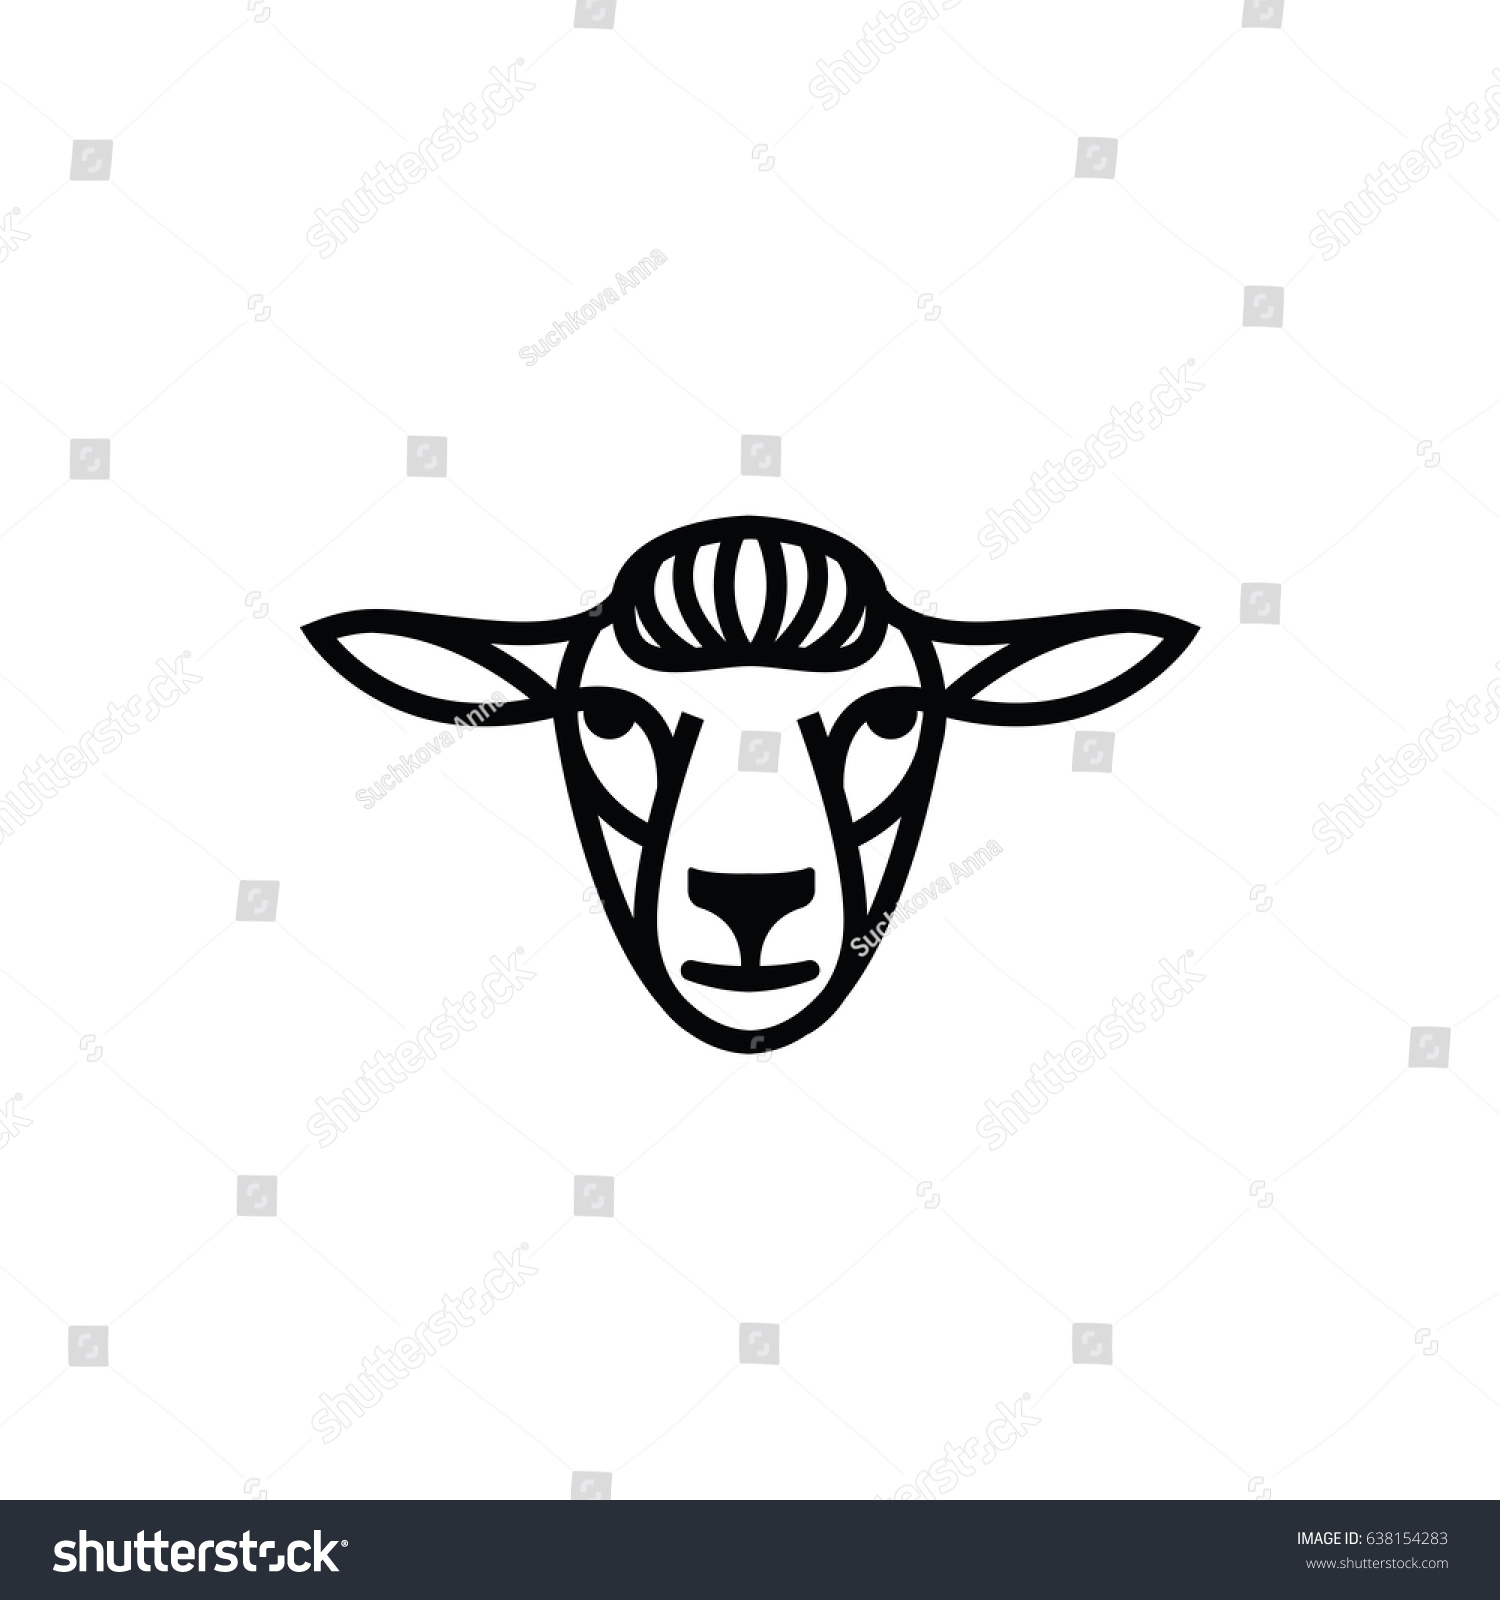 Linear Stylized Drawing Head Sheep Ram Stock Vector HD (Royalty Free ...